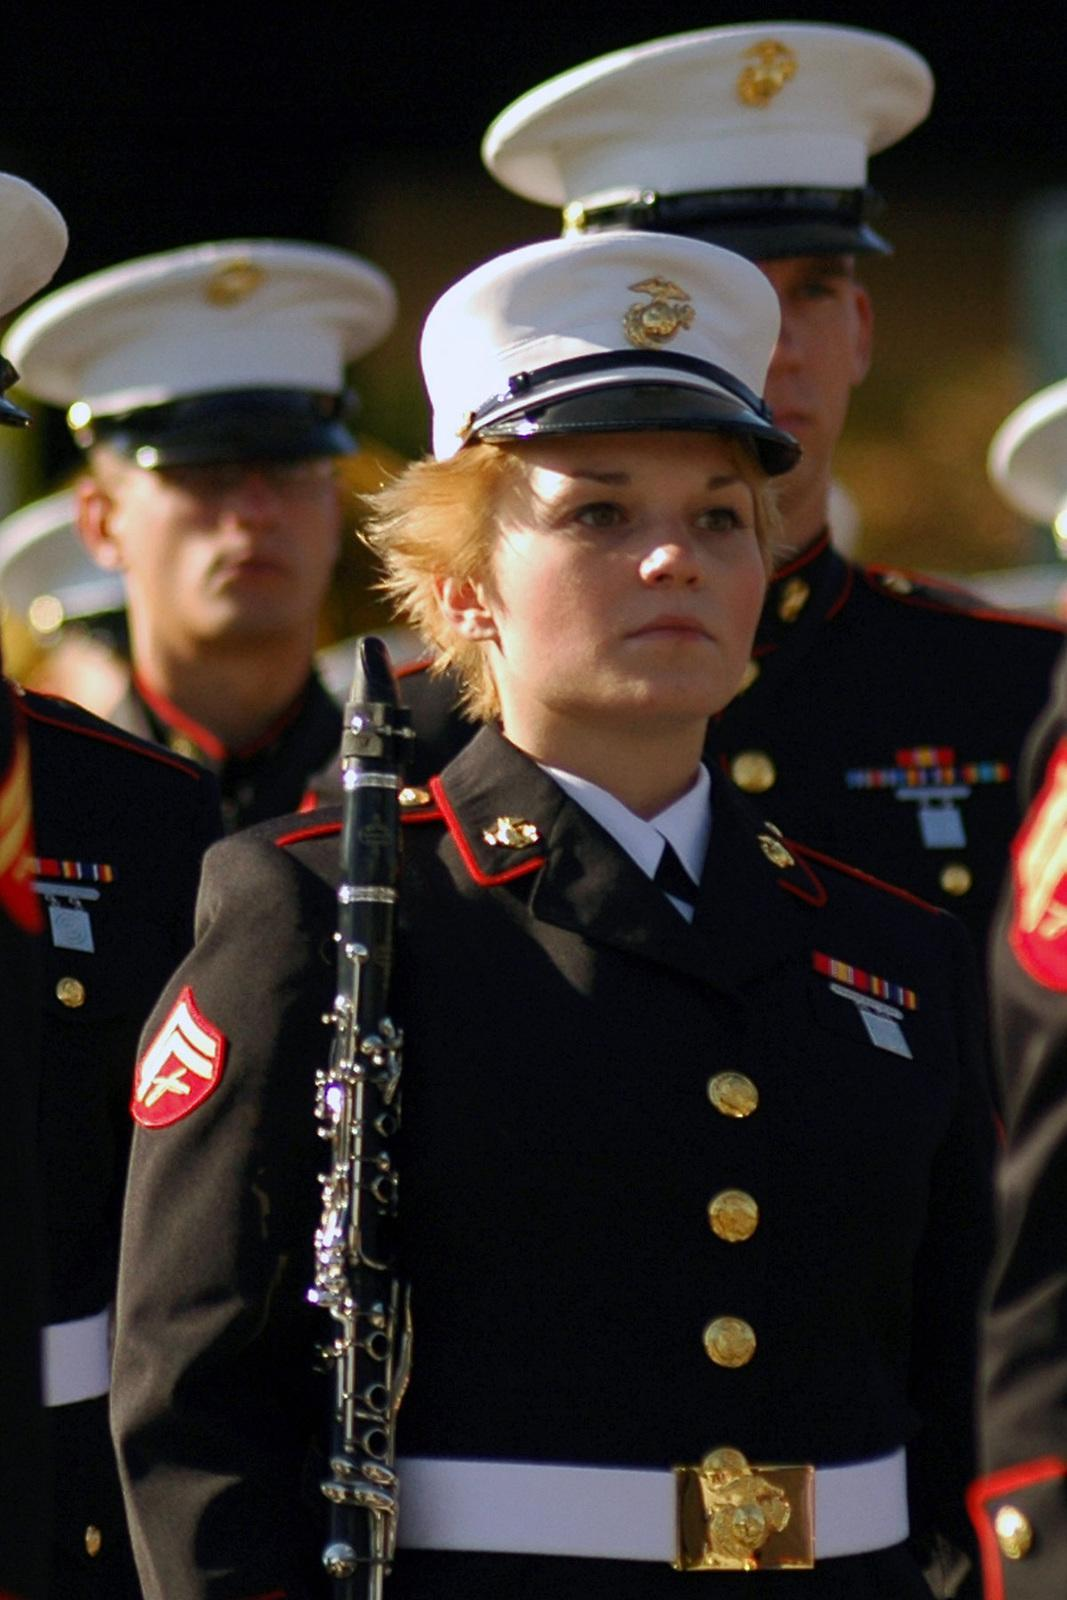 US Marine Corps (USMC) Corporal (CPL) Kristen Turner, a clarinet player for the 1st Marine Division Band, marches in the annual Tournament of Roses Parade Pasadena, California (CA).